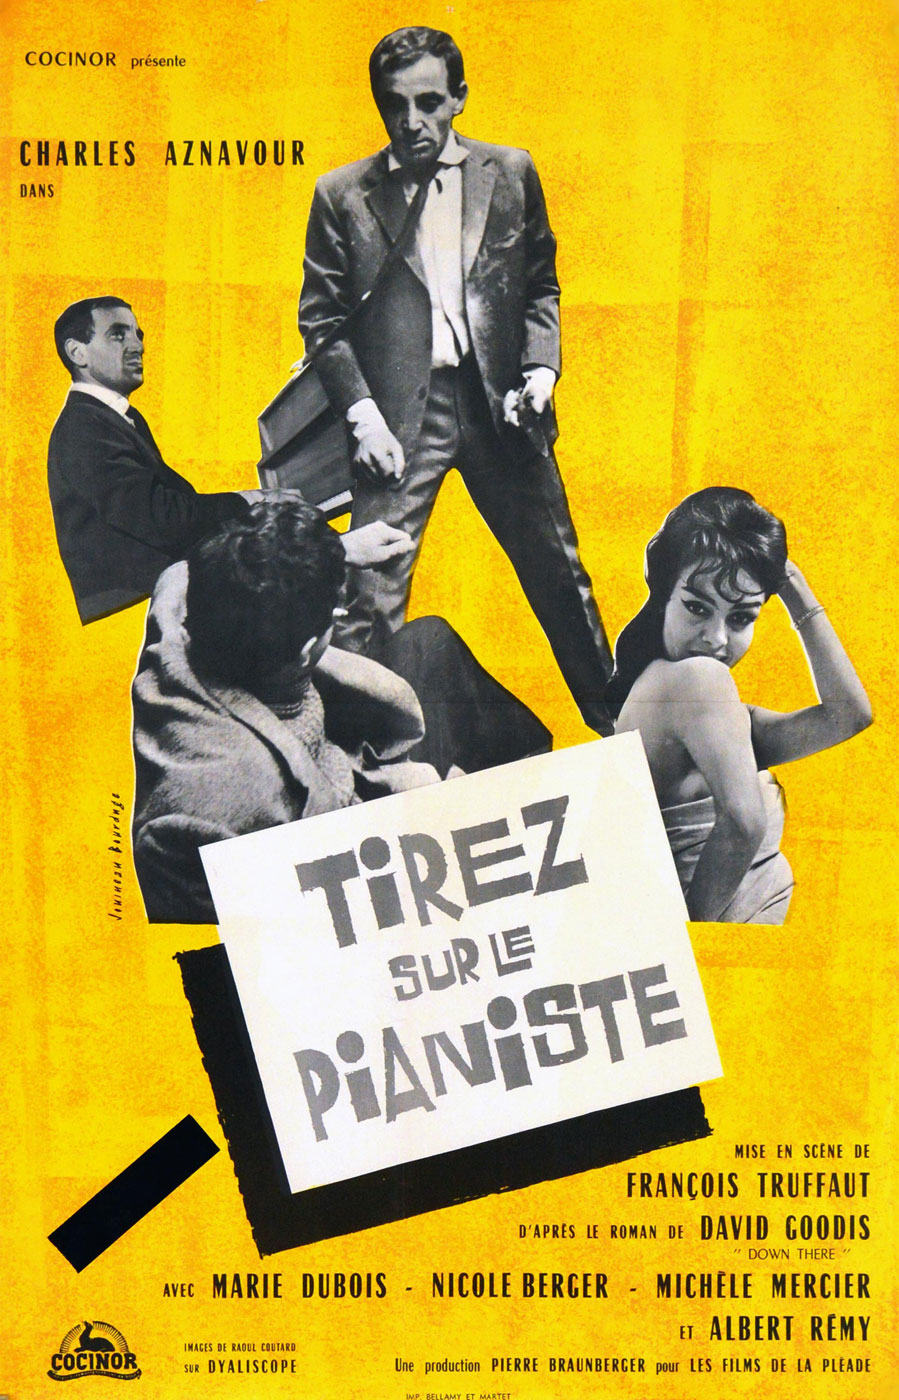 Tirez Sur Le Pianiste by Francois Truffaut (17 x 23 in)